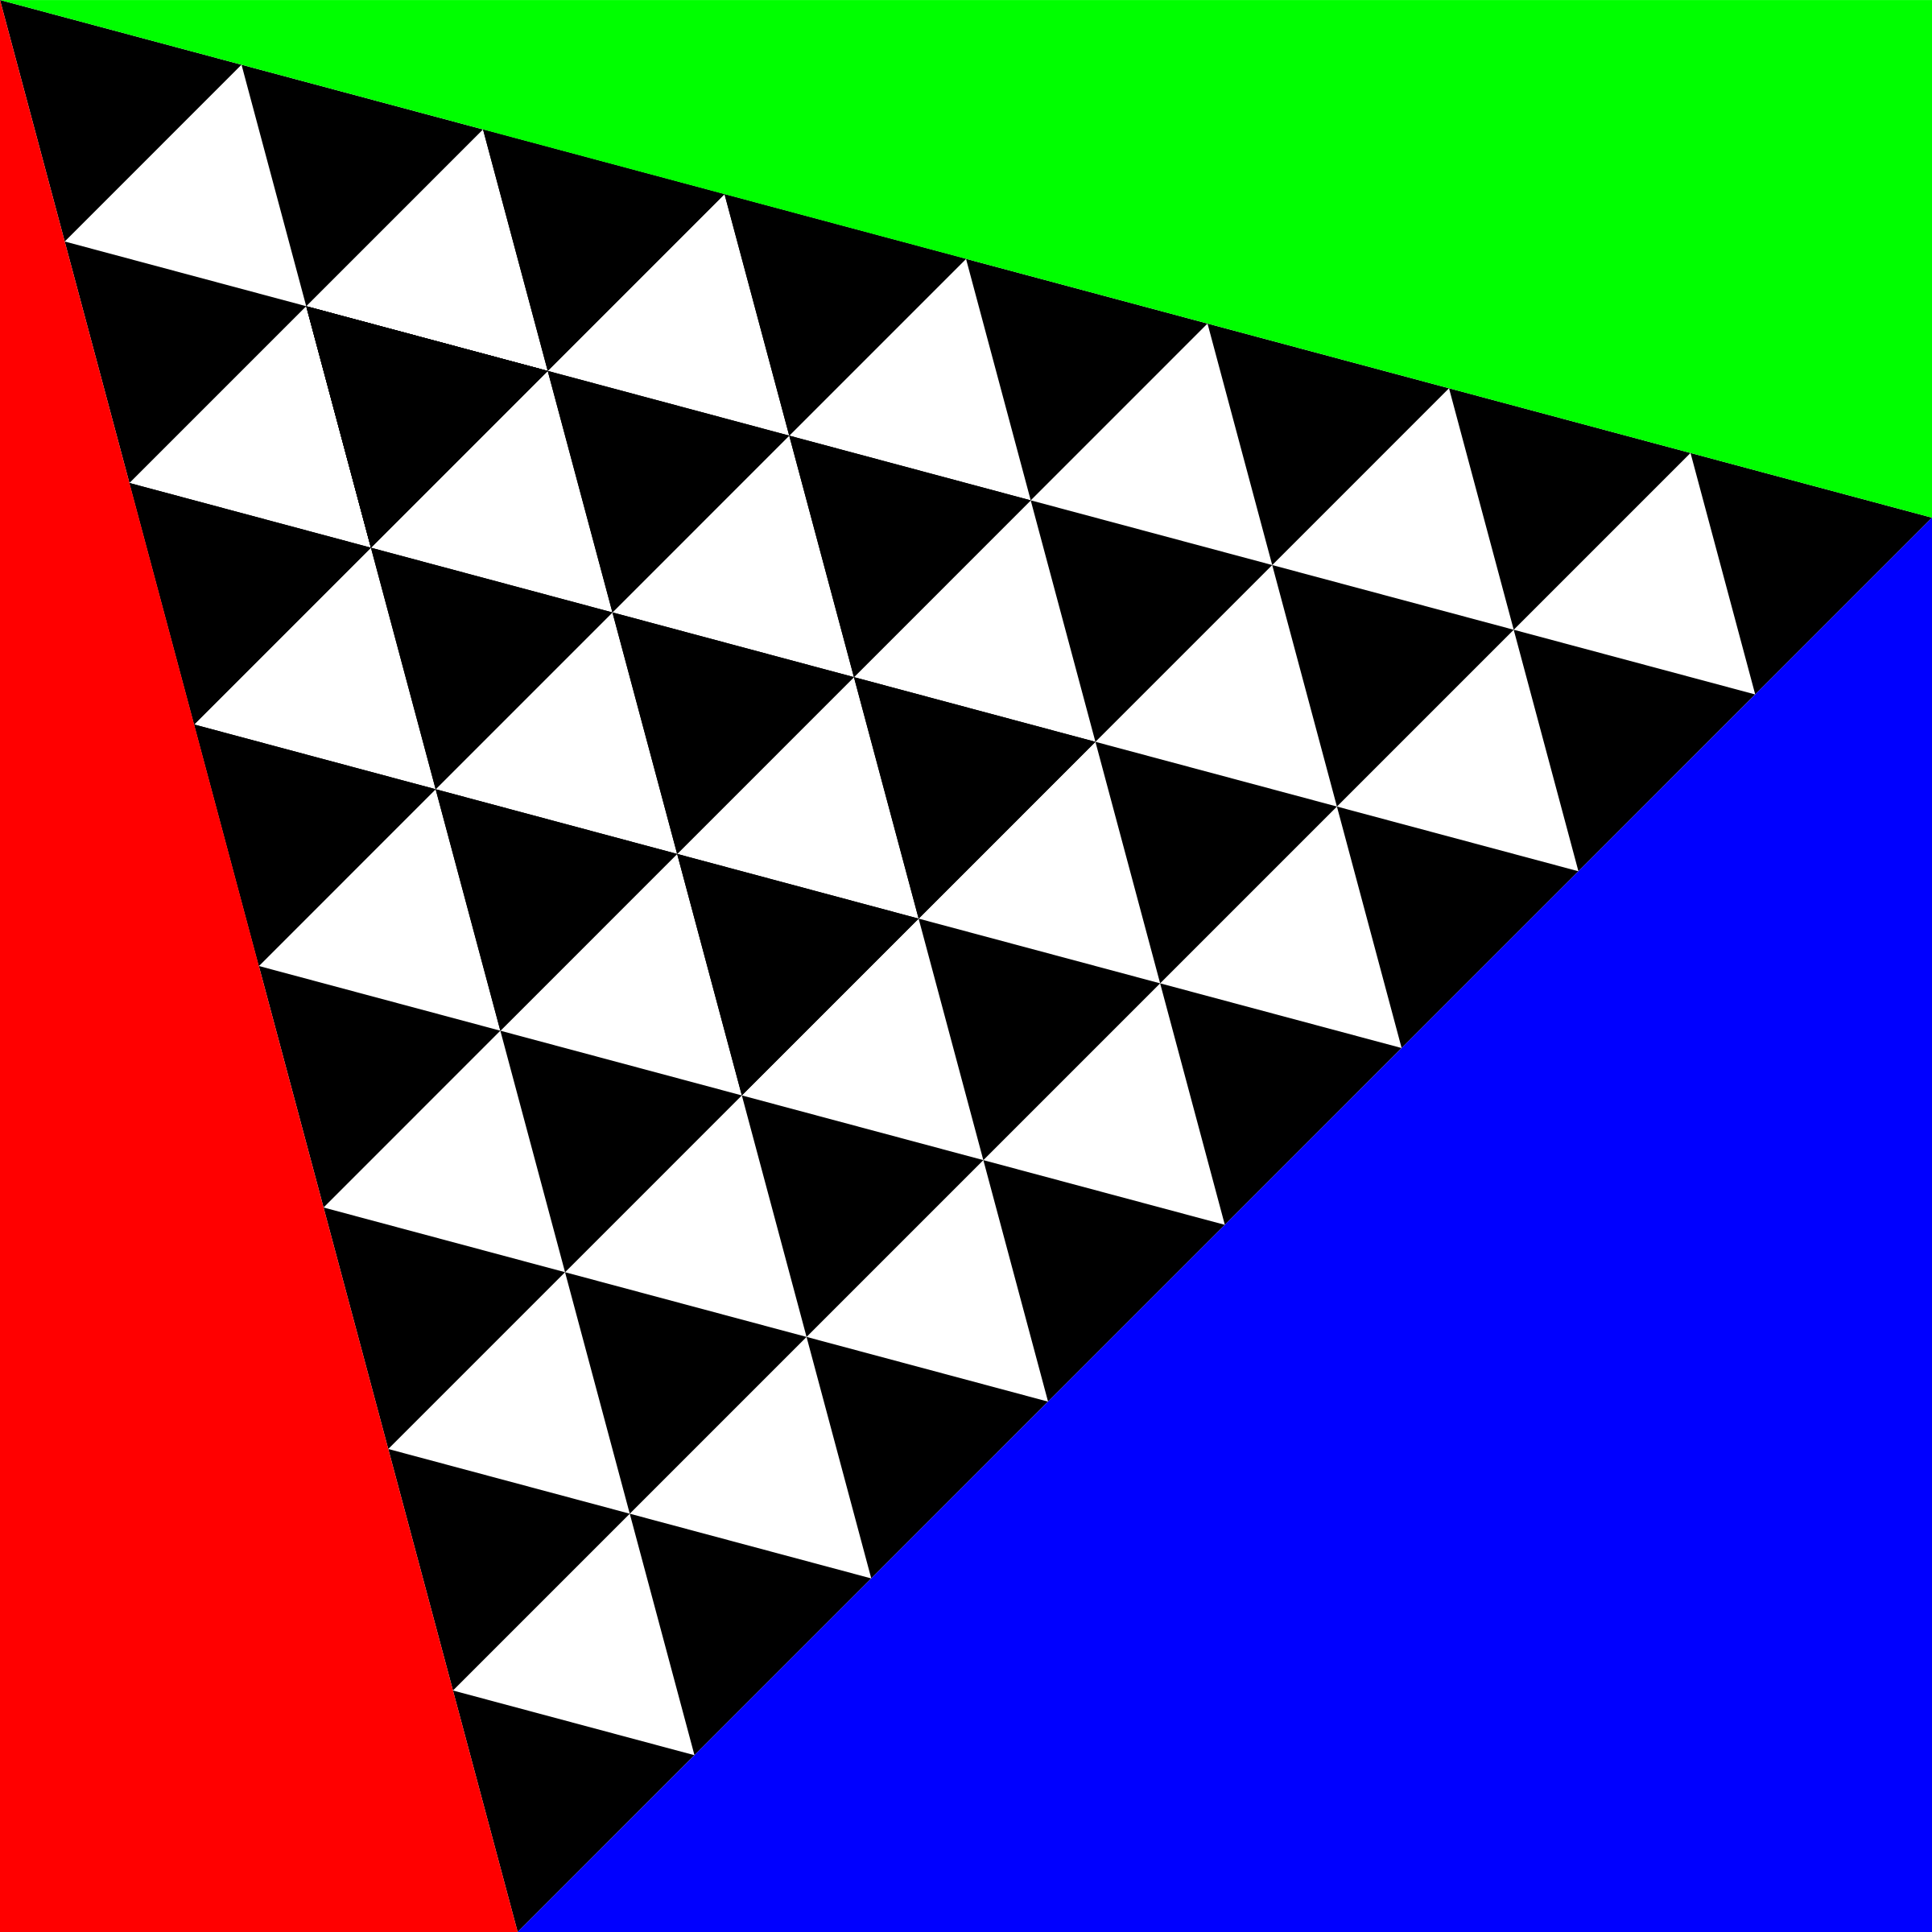 square meets triangles by 10binary